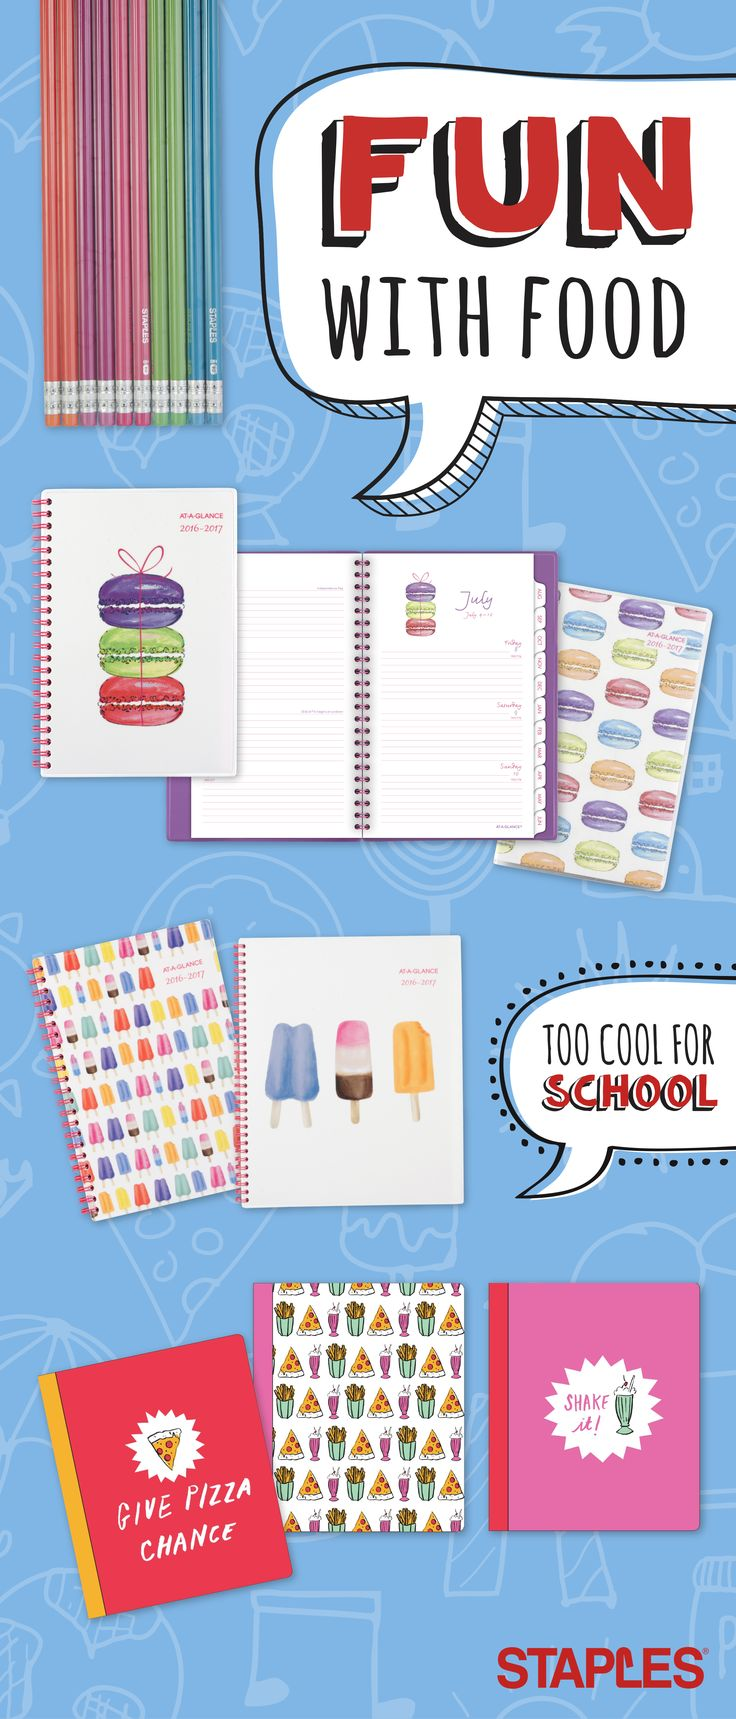 Treat yourself to a selection of school supplies that's anything but bland. From popsicle-clad notebook covers to pizza-themed planners, these everyday school staples will have you salivating.